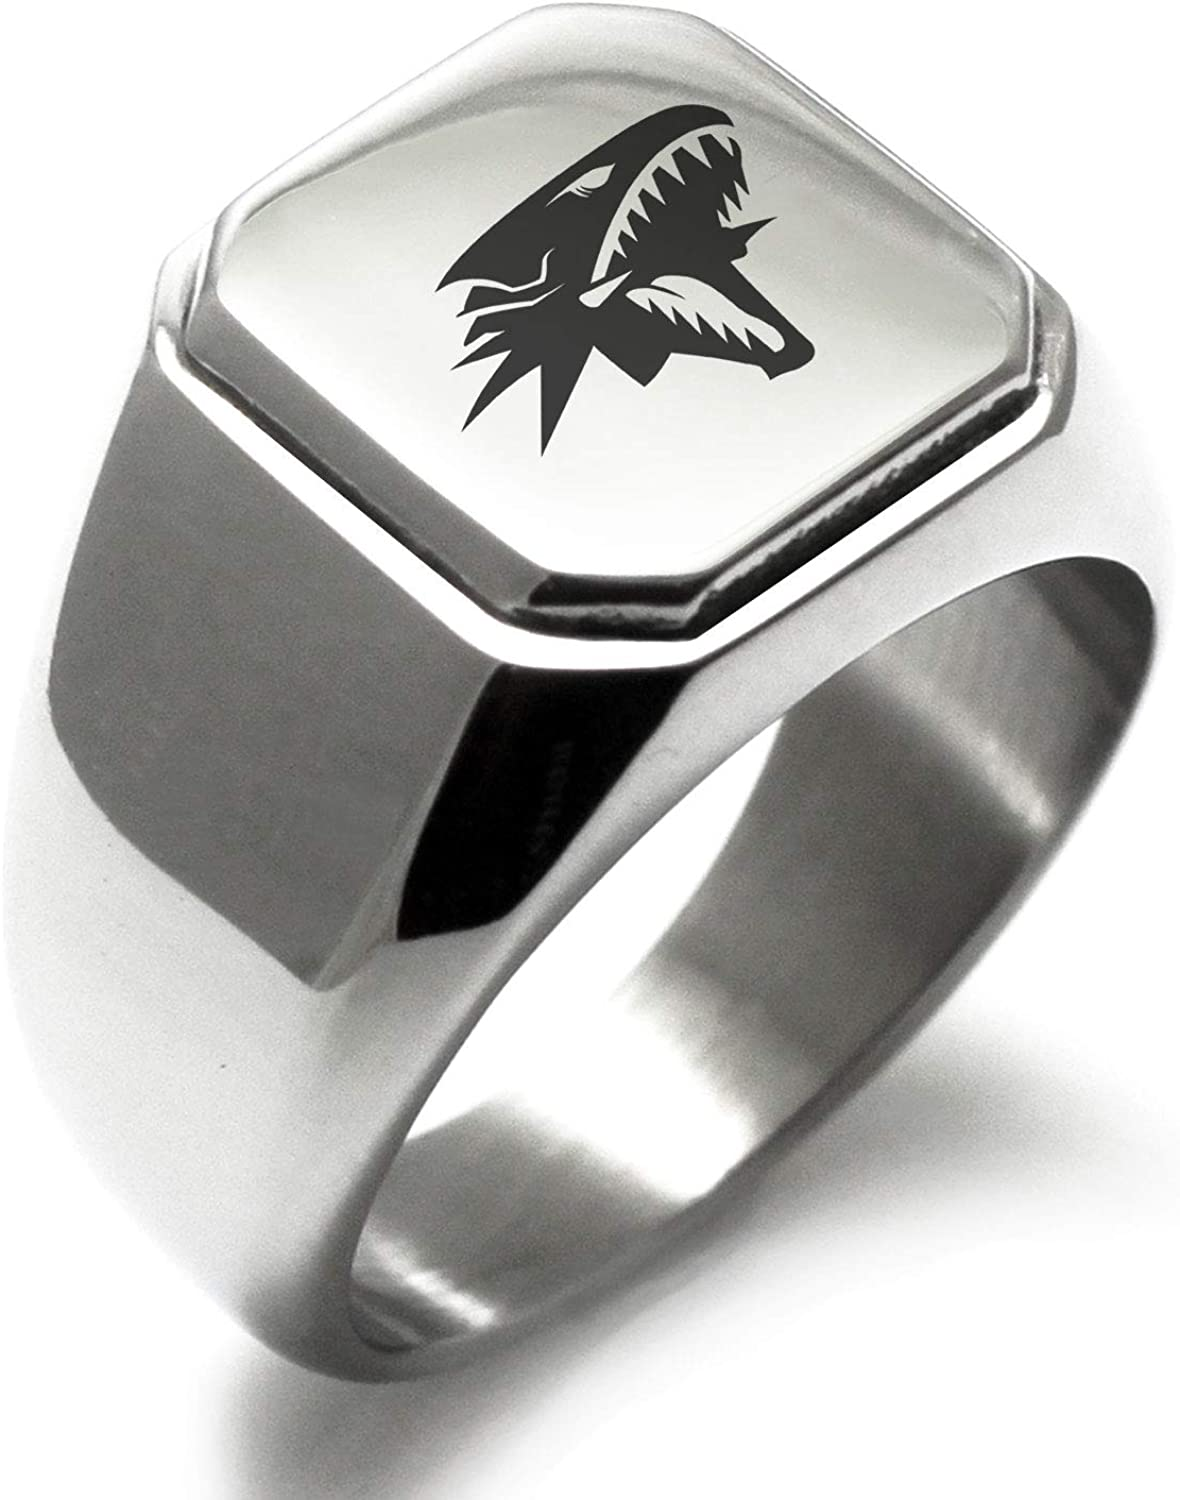 Blue-Eyes White Dragon Stainless Steel Engraved Classic Square Flat Top Biker Style Polished Ring Yu-Gi-Oh